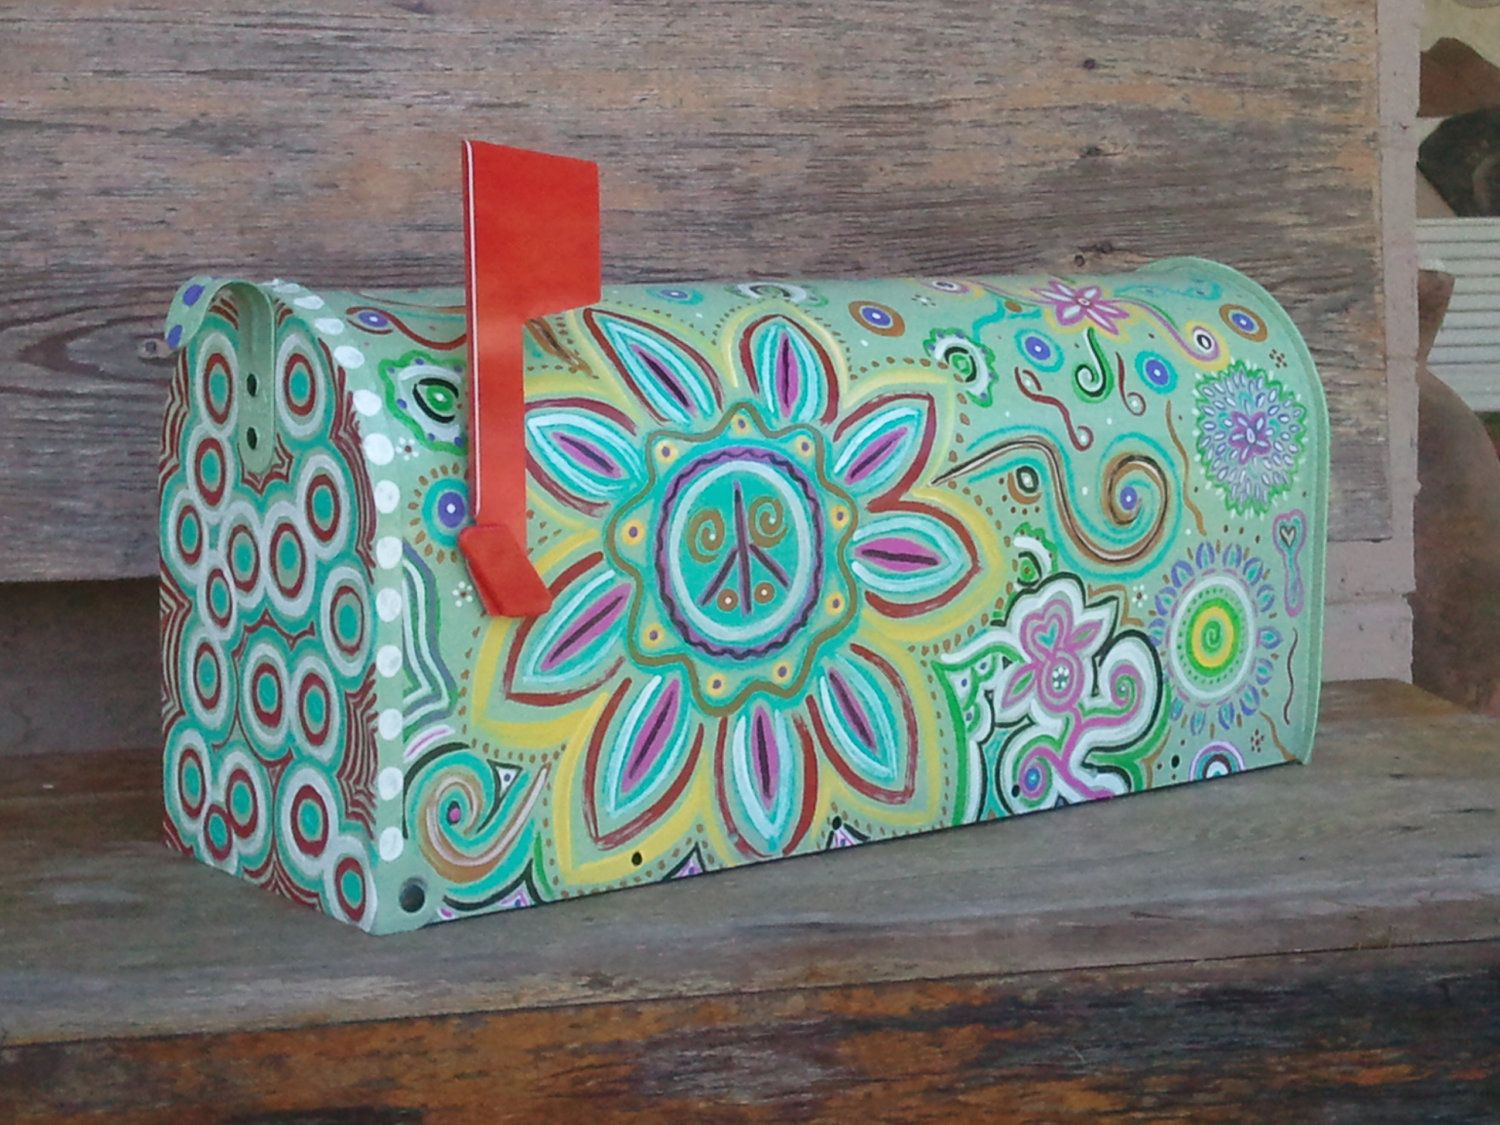 hand painted mailbox designs. Fun, Funky Painted Mailbox Hand Designs I